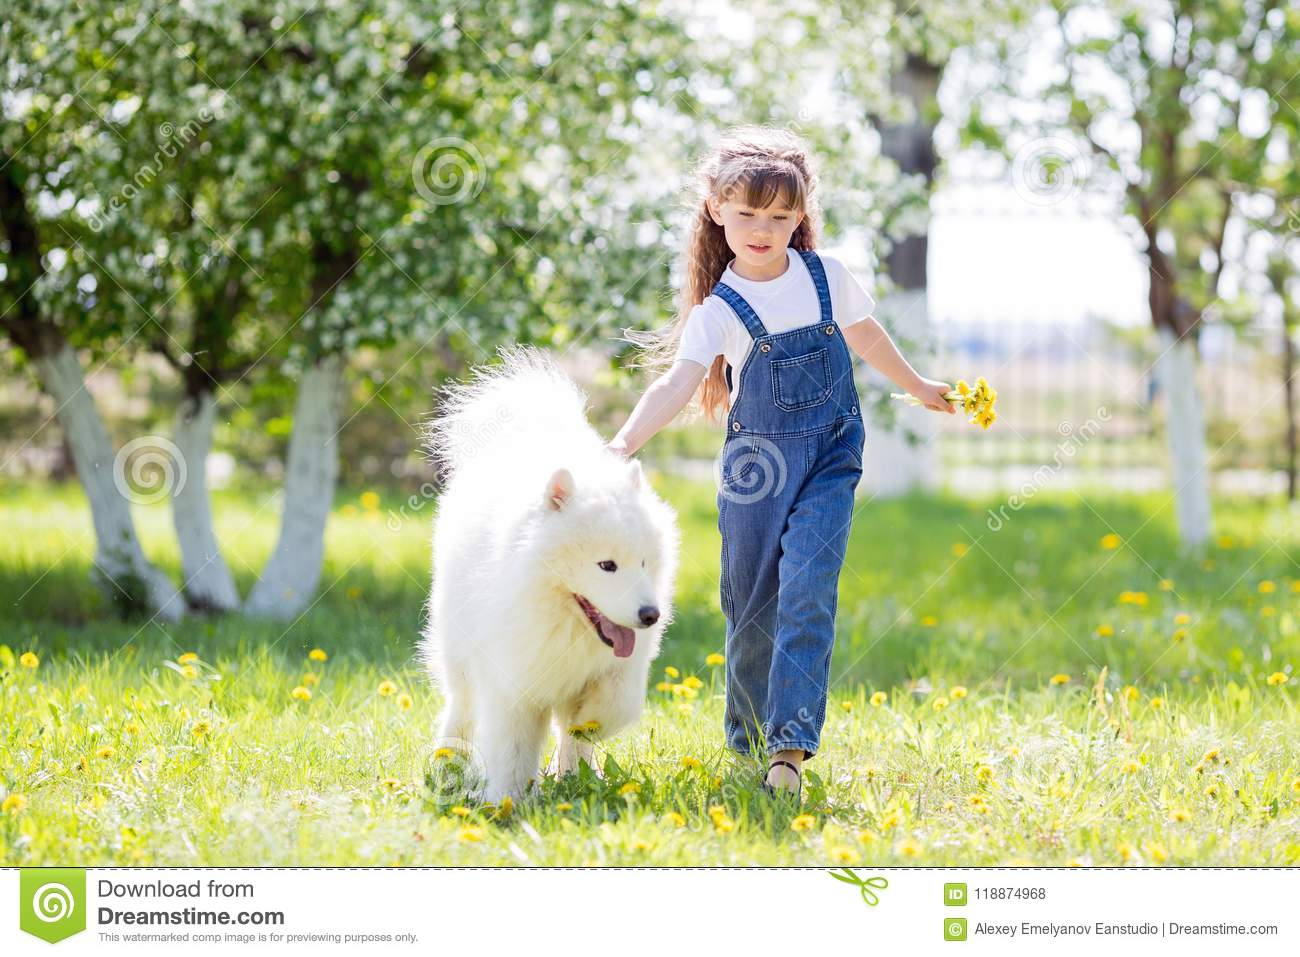 A Beautiful 5 Year Old Girl In Jeans Hugs Her Favorite Dog During A Summer Walk